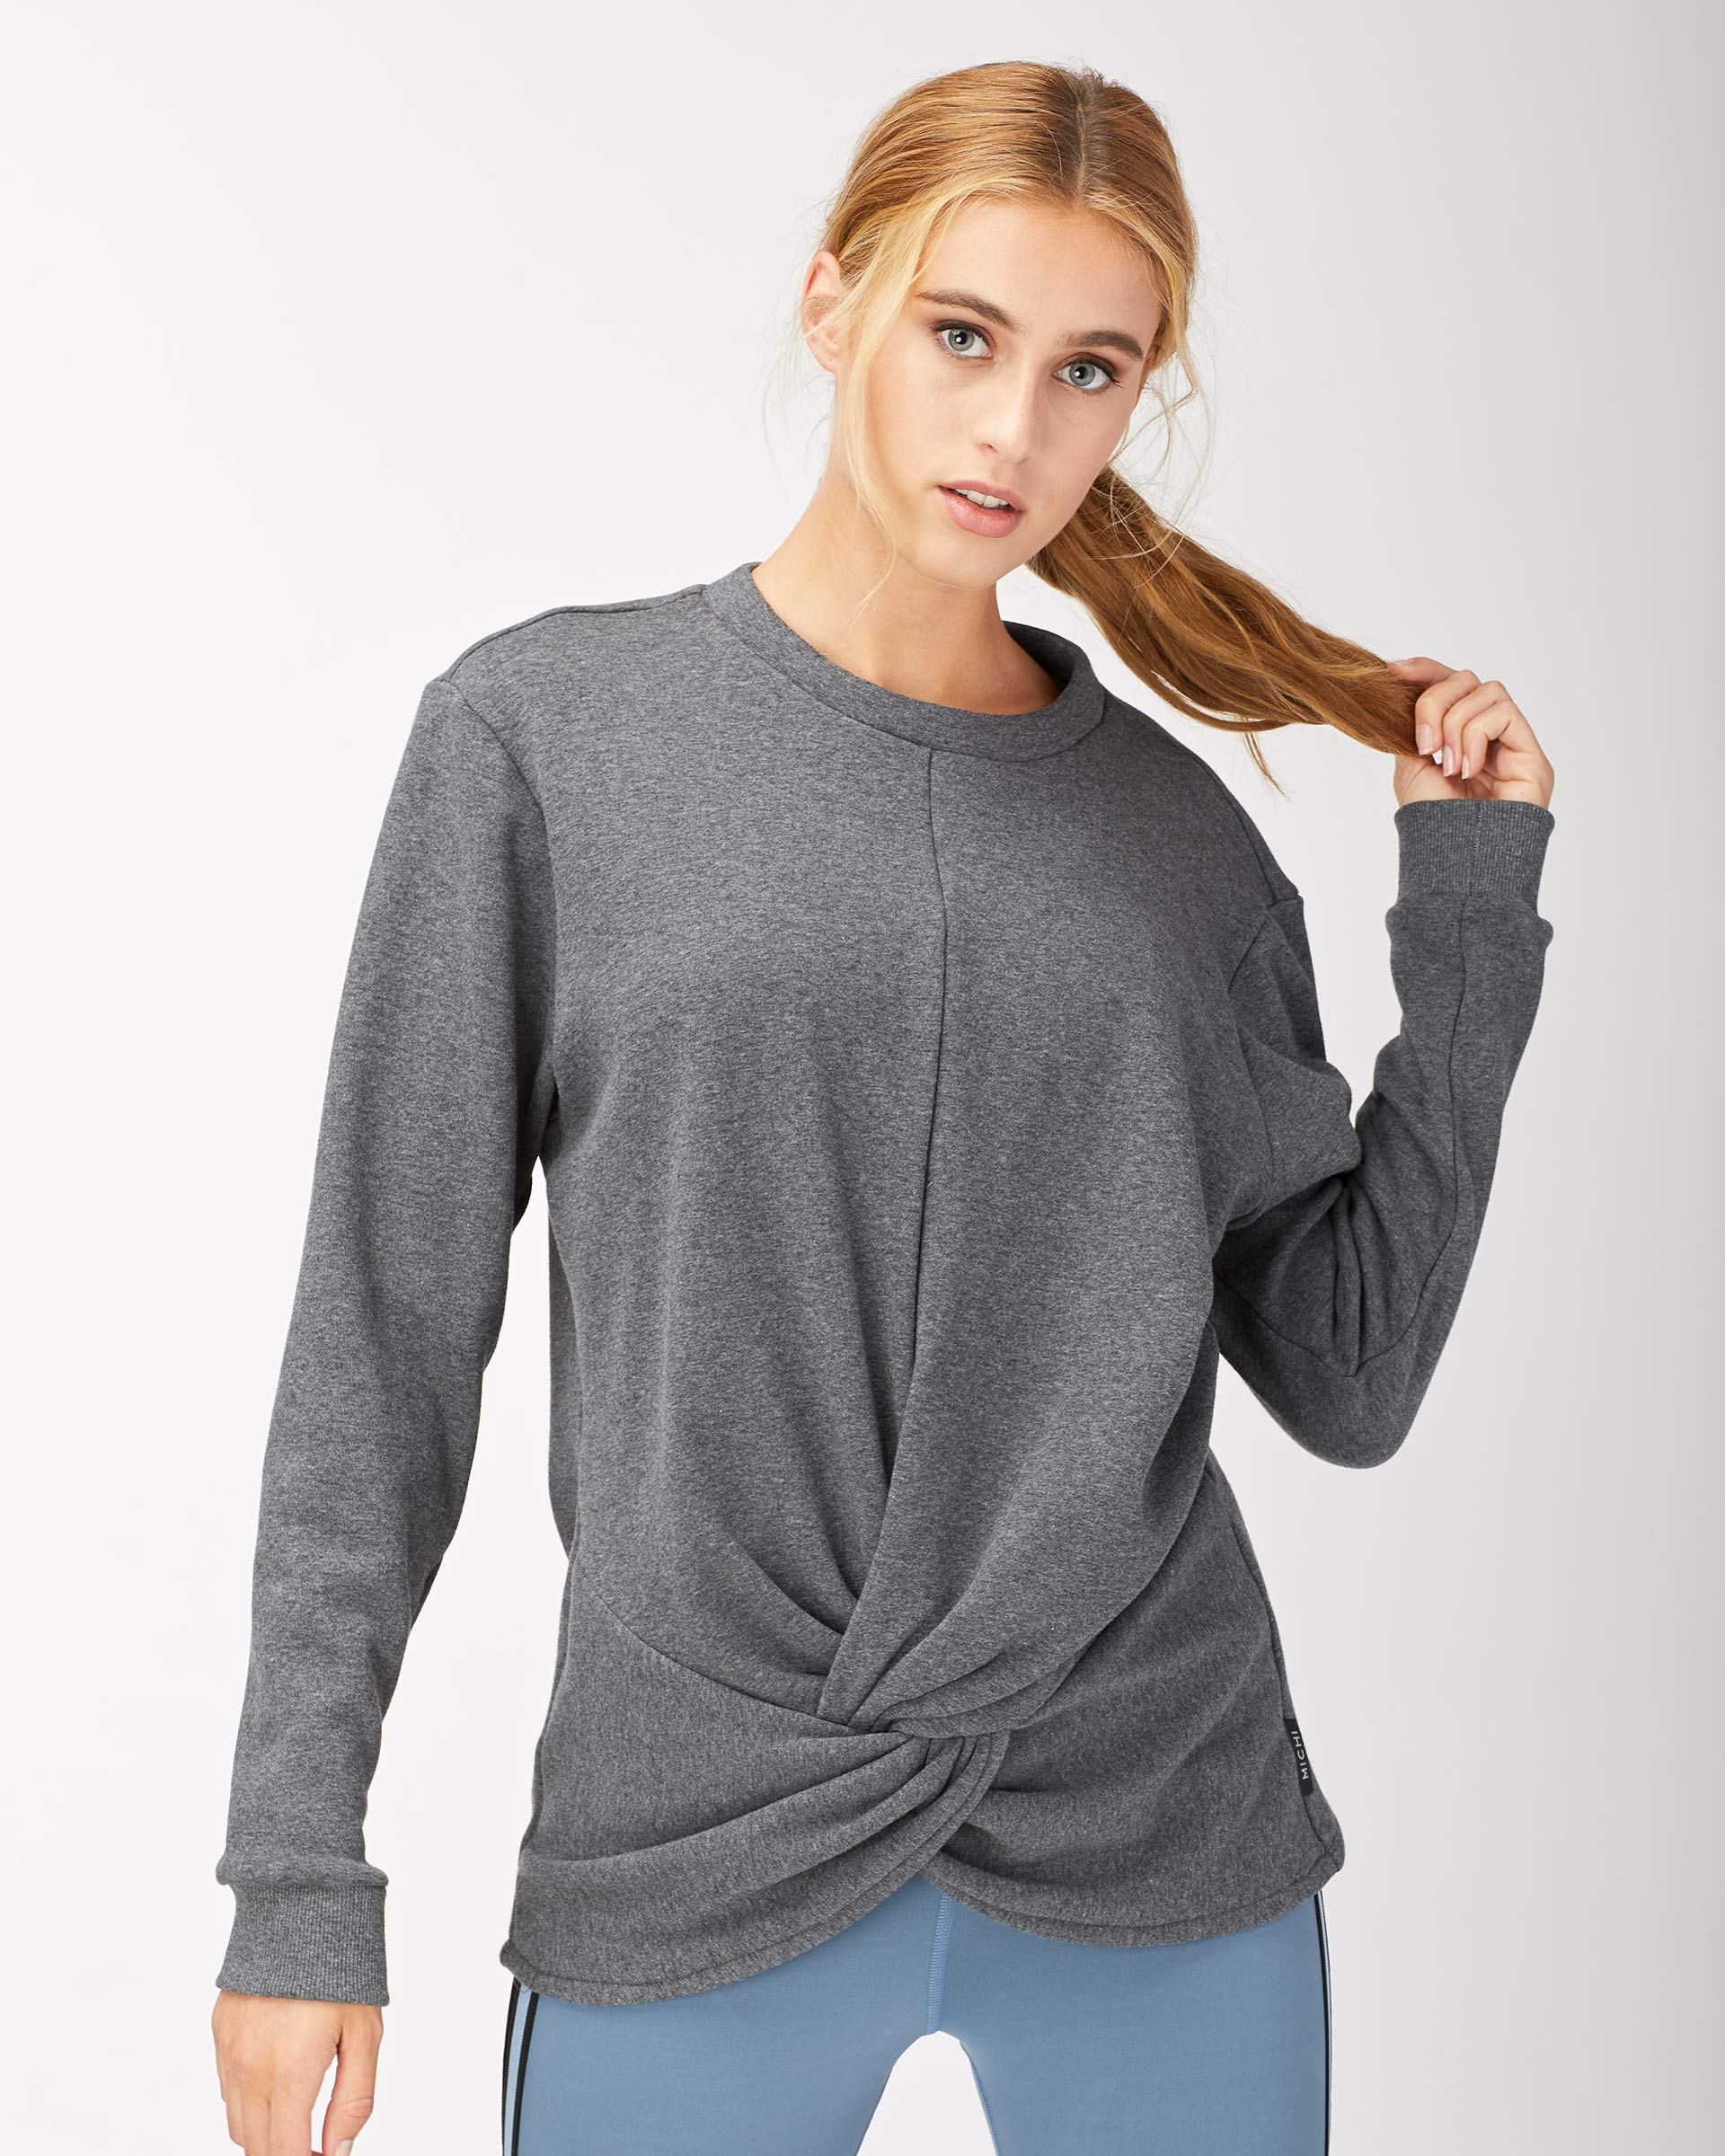 farfalla-sweatshirt-charcoal-grey